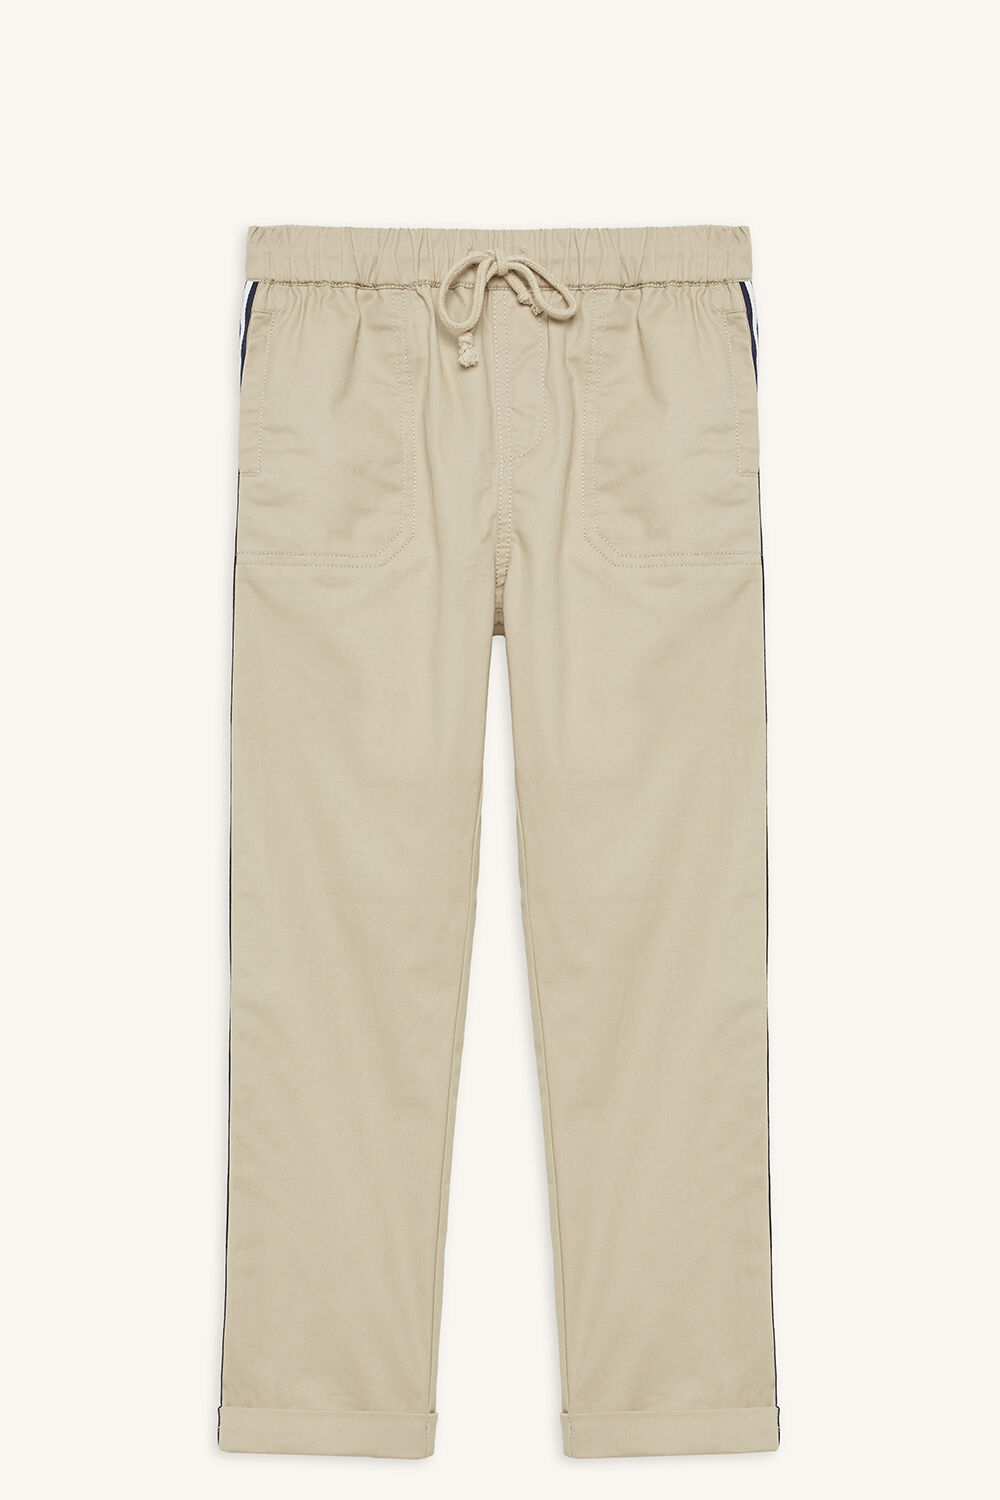 FELIX CARGO PANT in colour BLEACHED SAND